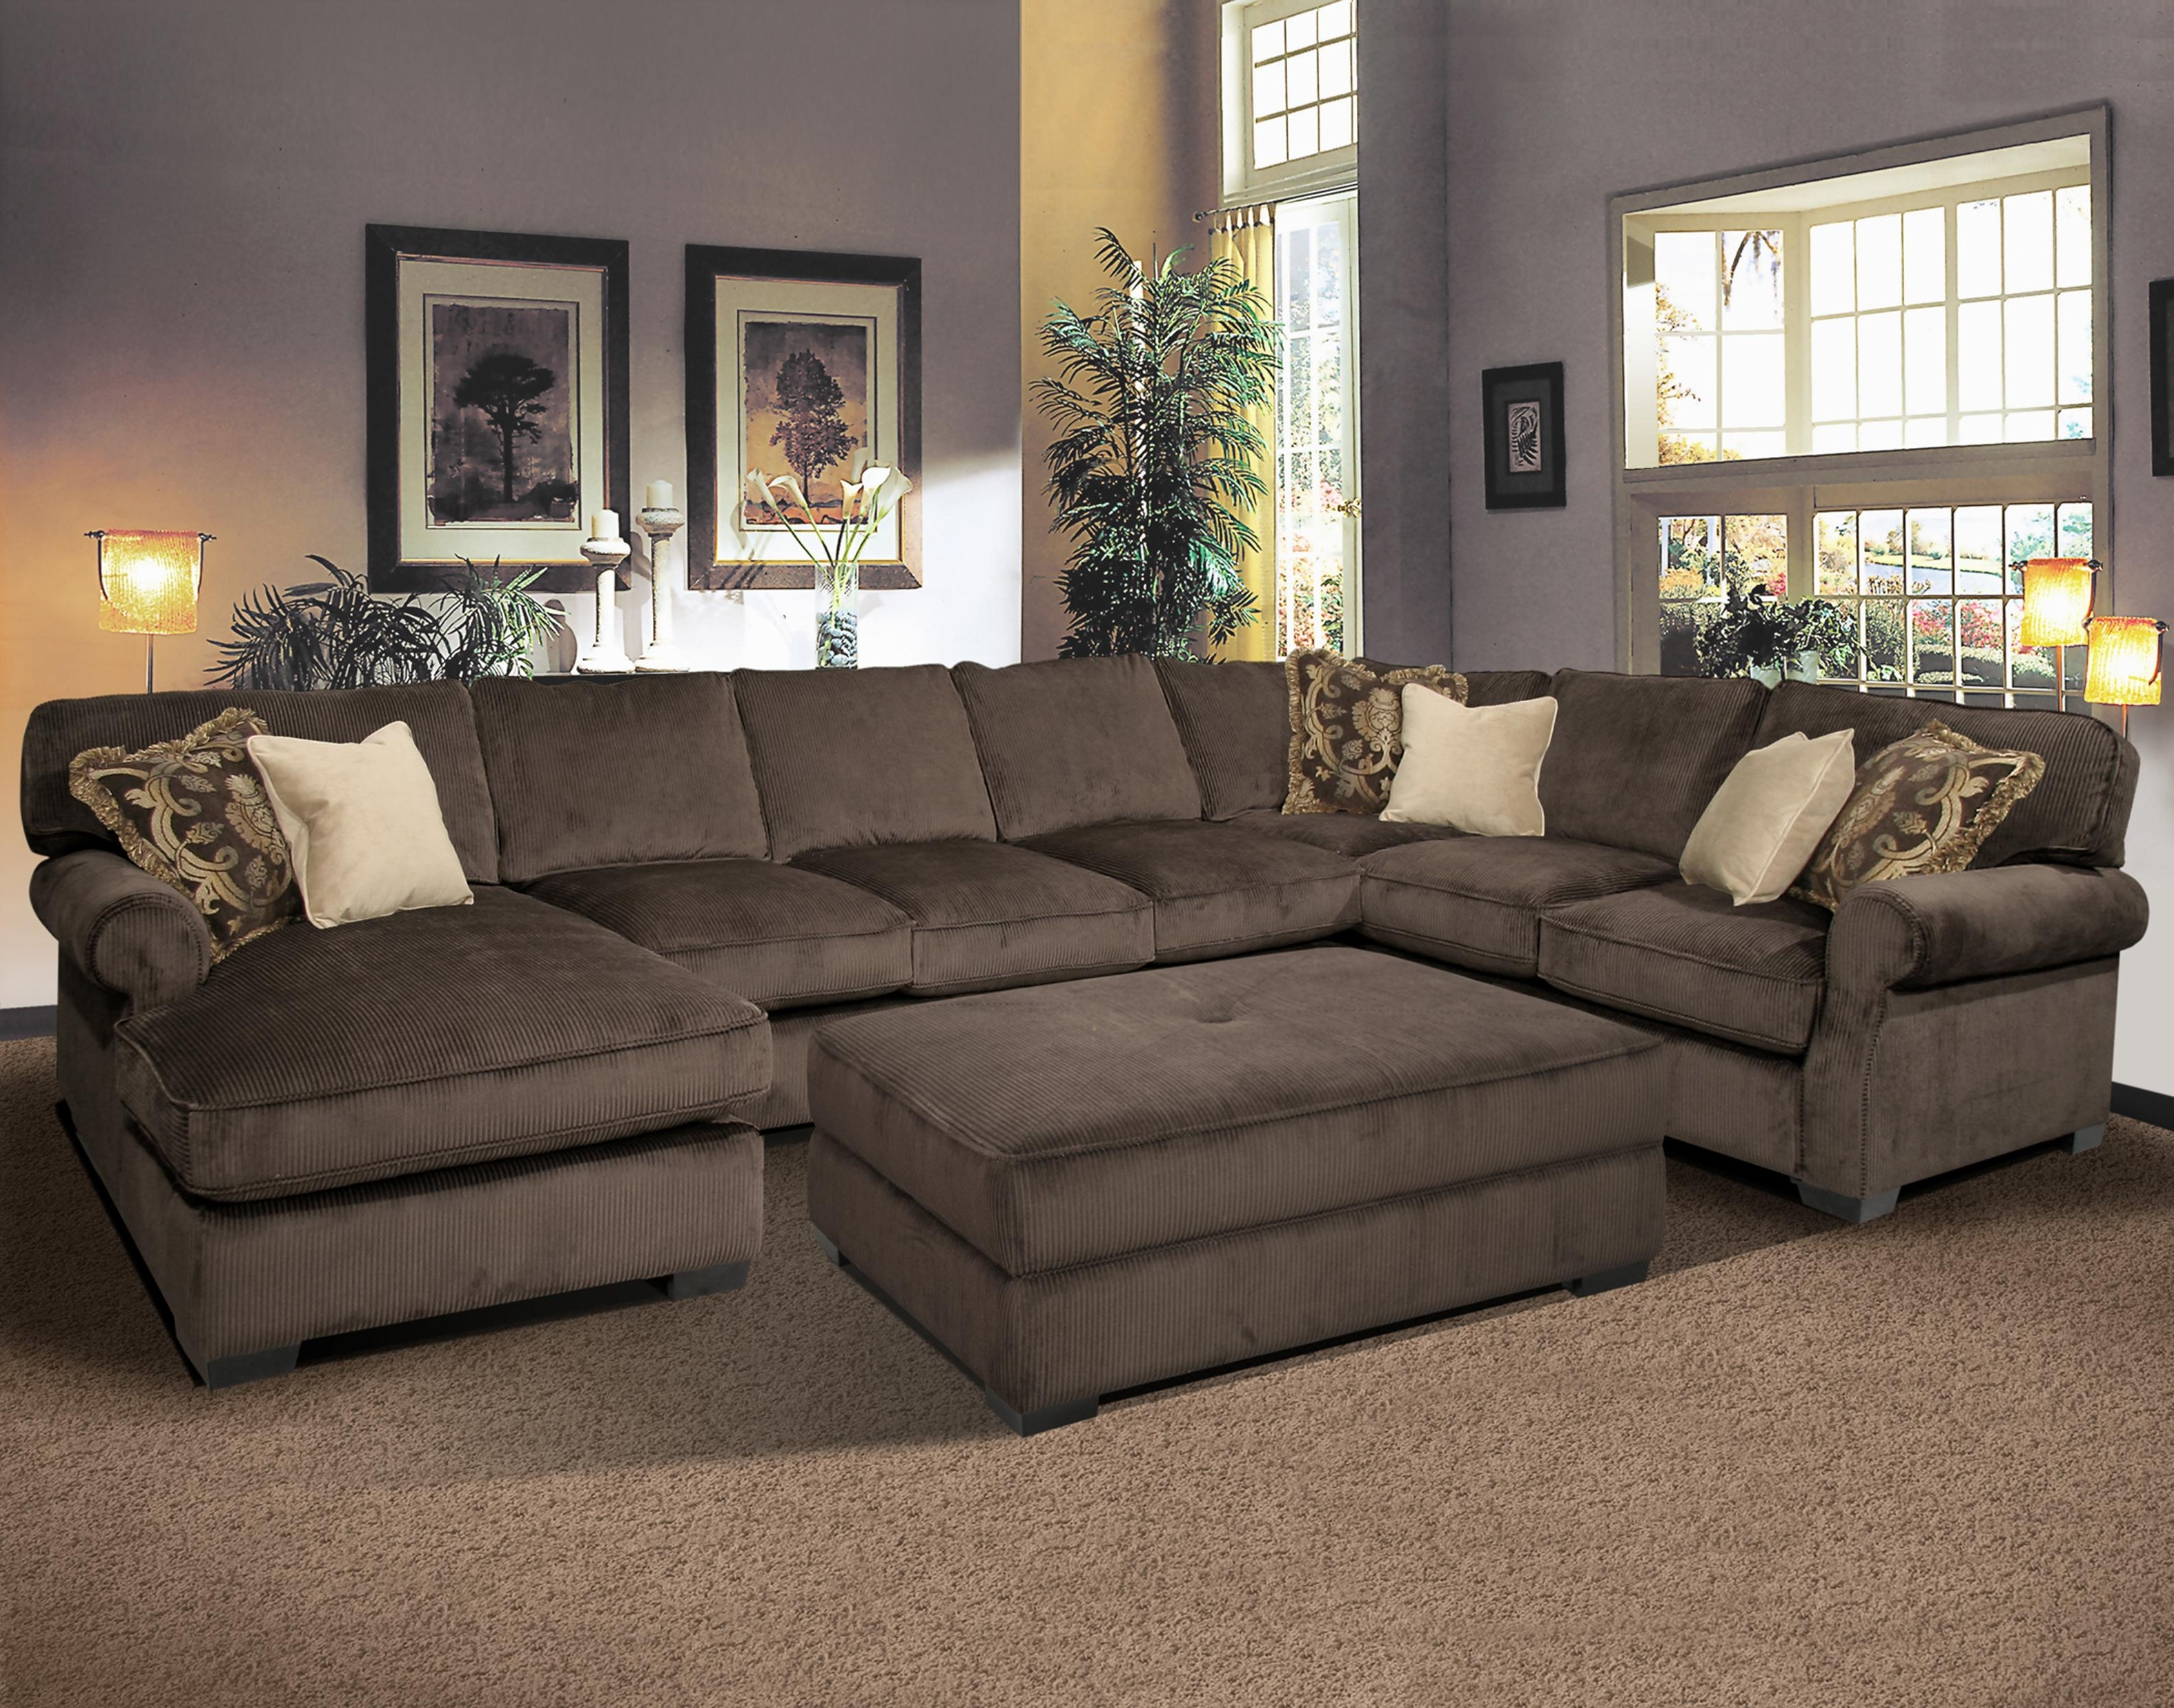 Extra Large U Shaped Sectionals In 2018 Sectional Couch With Recliner Ikea Couch Bed Large Leather (View 3 of 20)